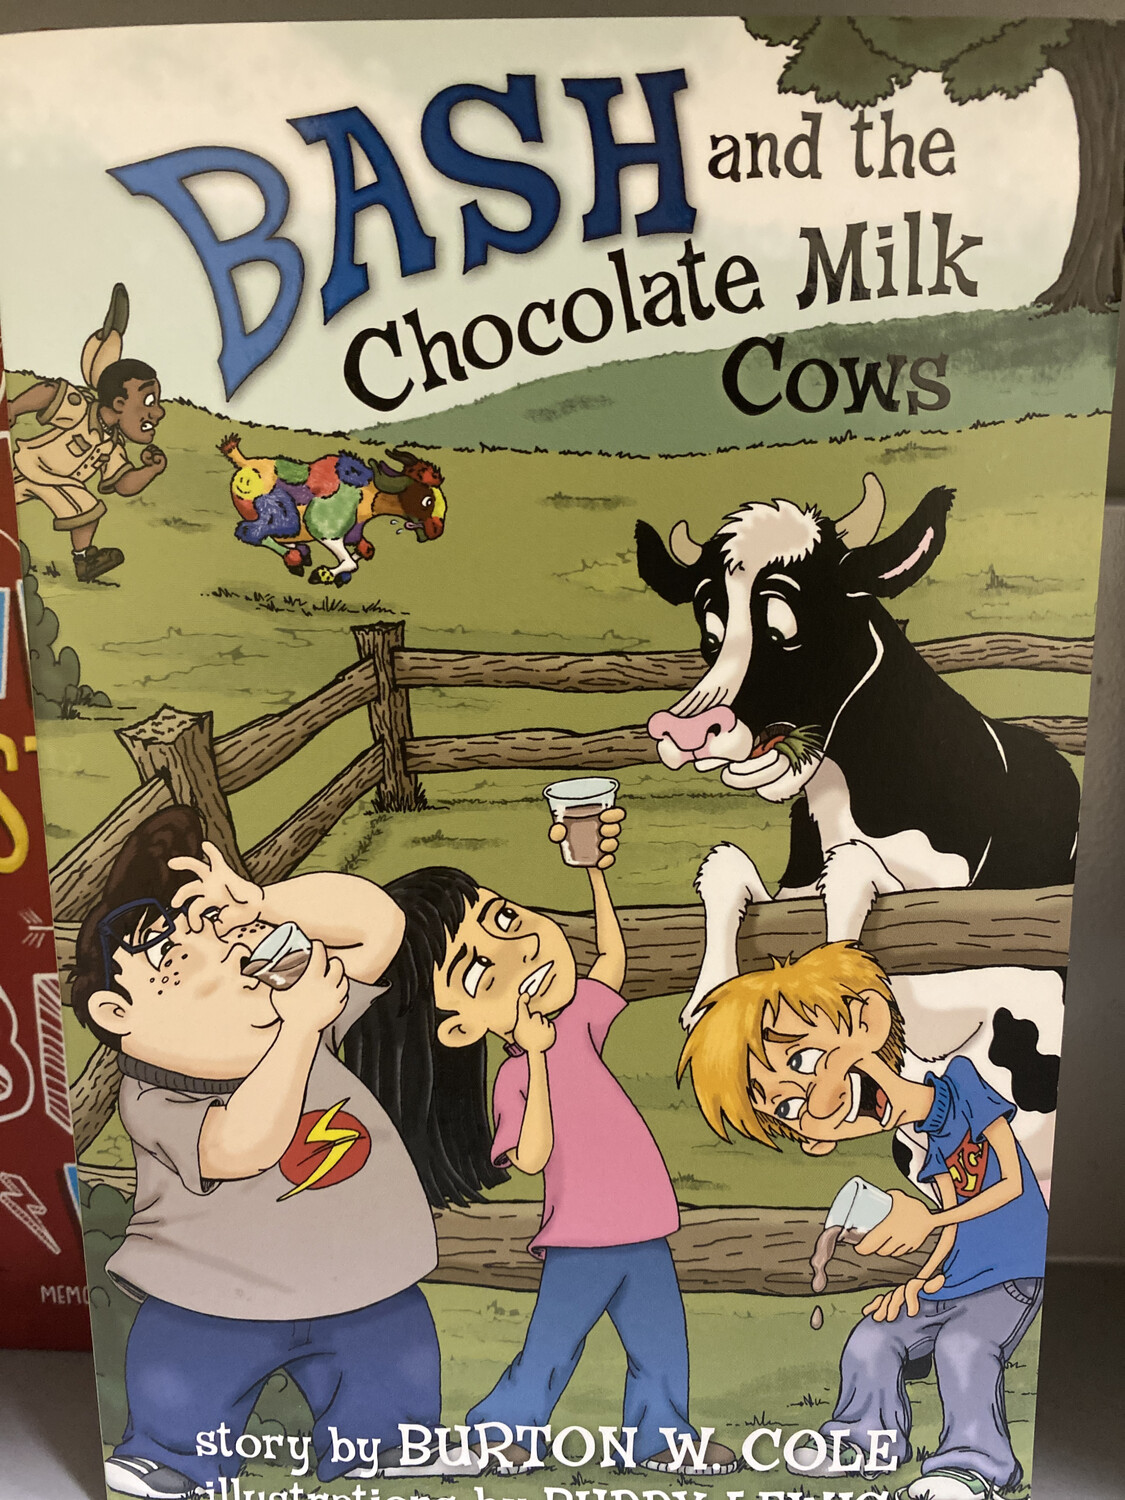 COLE, Bash And The Chocolate Milk Cows